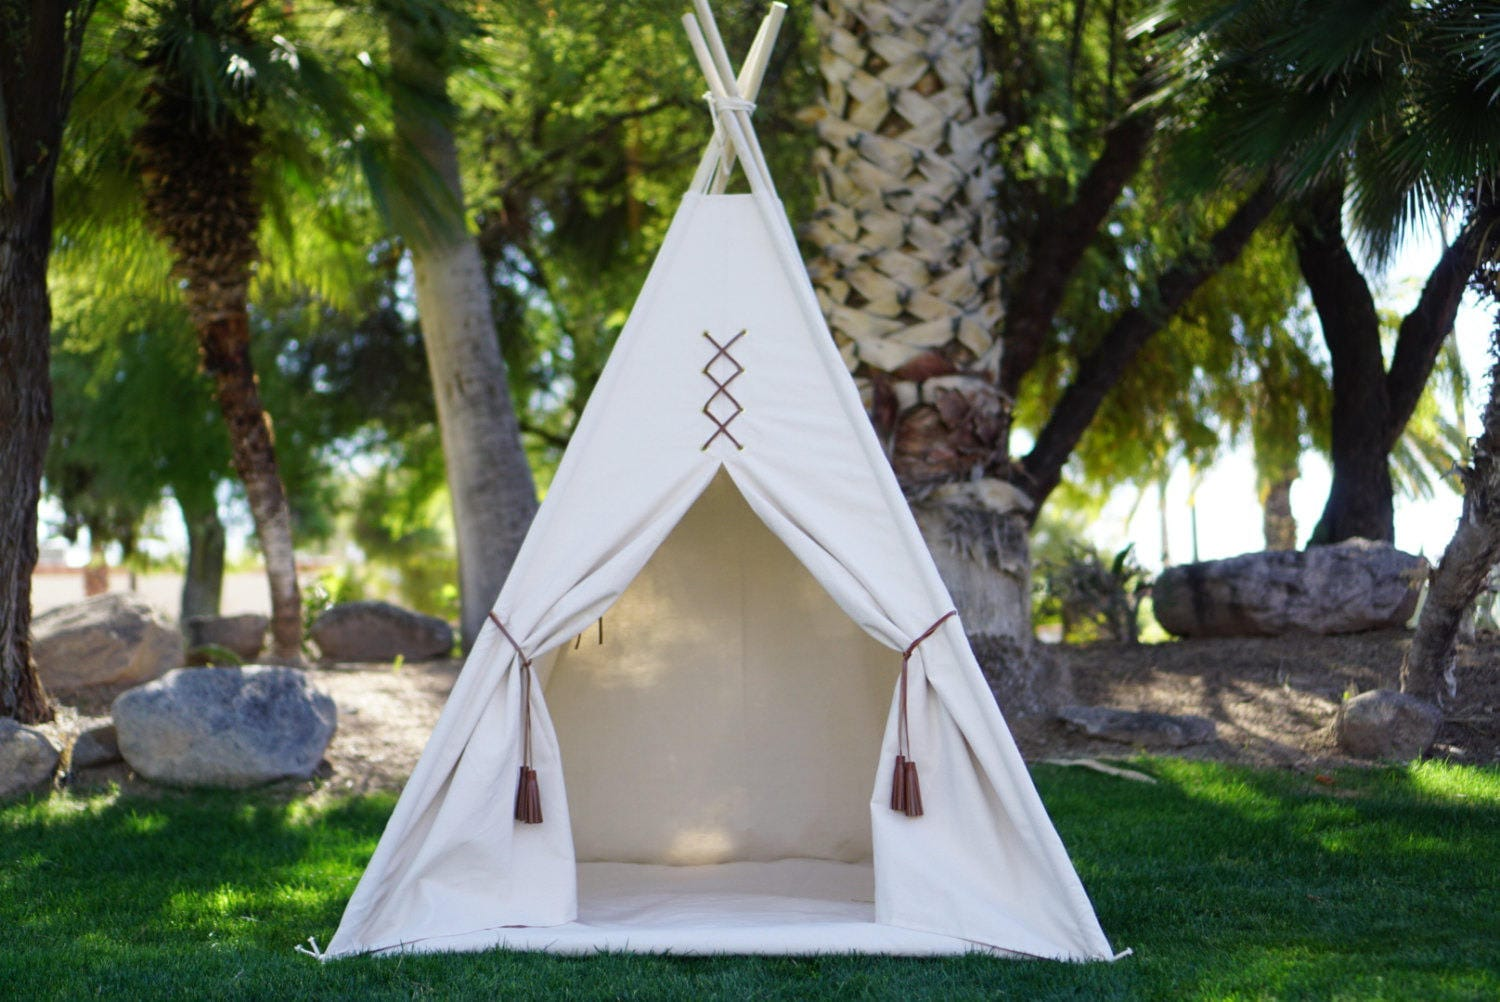 Original Teepee Kids Teepee With Nature Canvas And